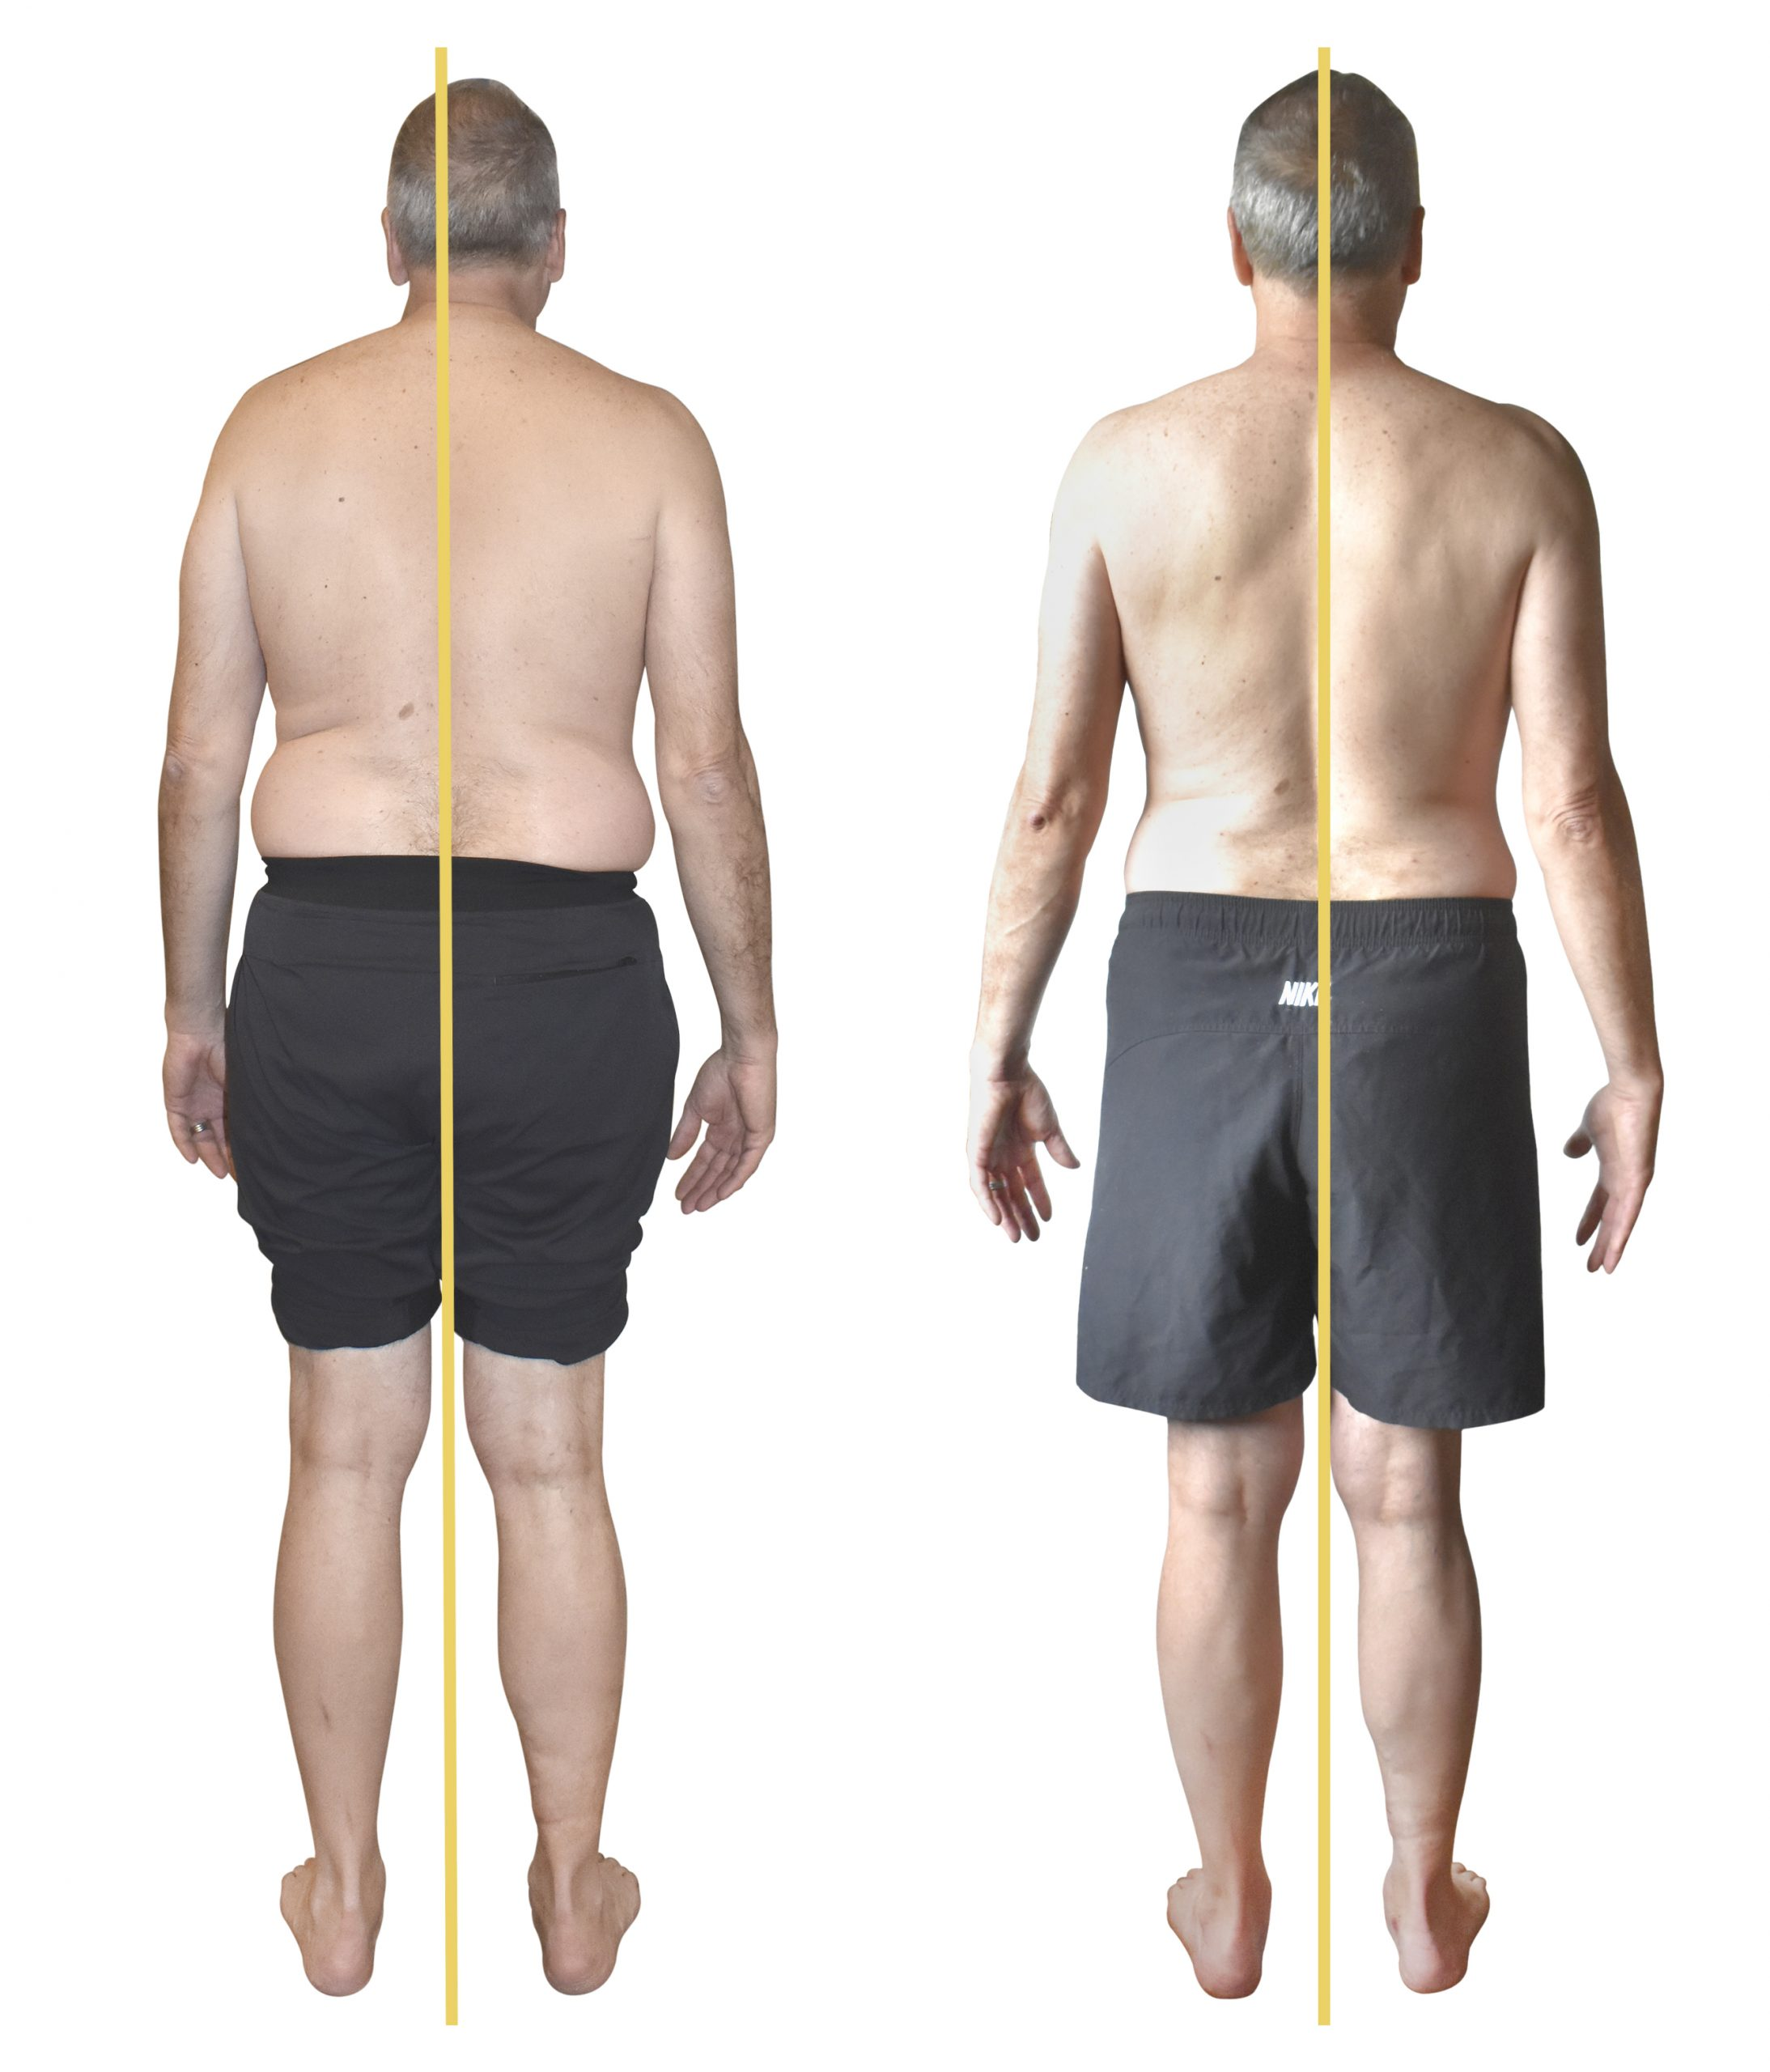 Joe changed his posture, got out of pain and  changed his life in less than two weeks without dieting, stretching or sweaty gym exercises. Using FitAlign's breath based repatterning, Joe rewired his brain to enlist his muscles creating body wide balance tone and upright posture.